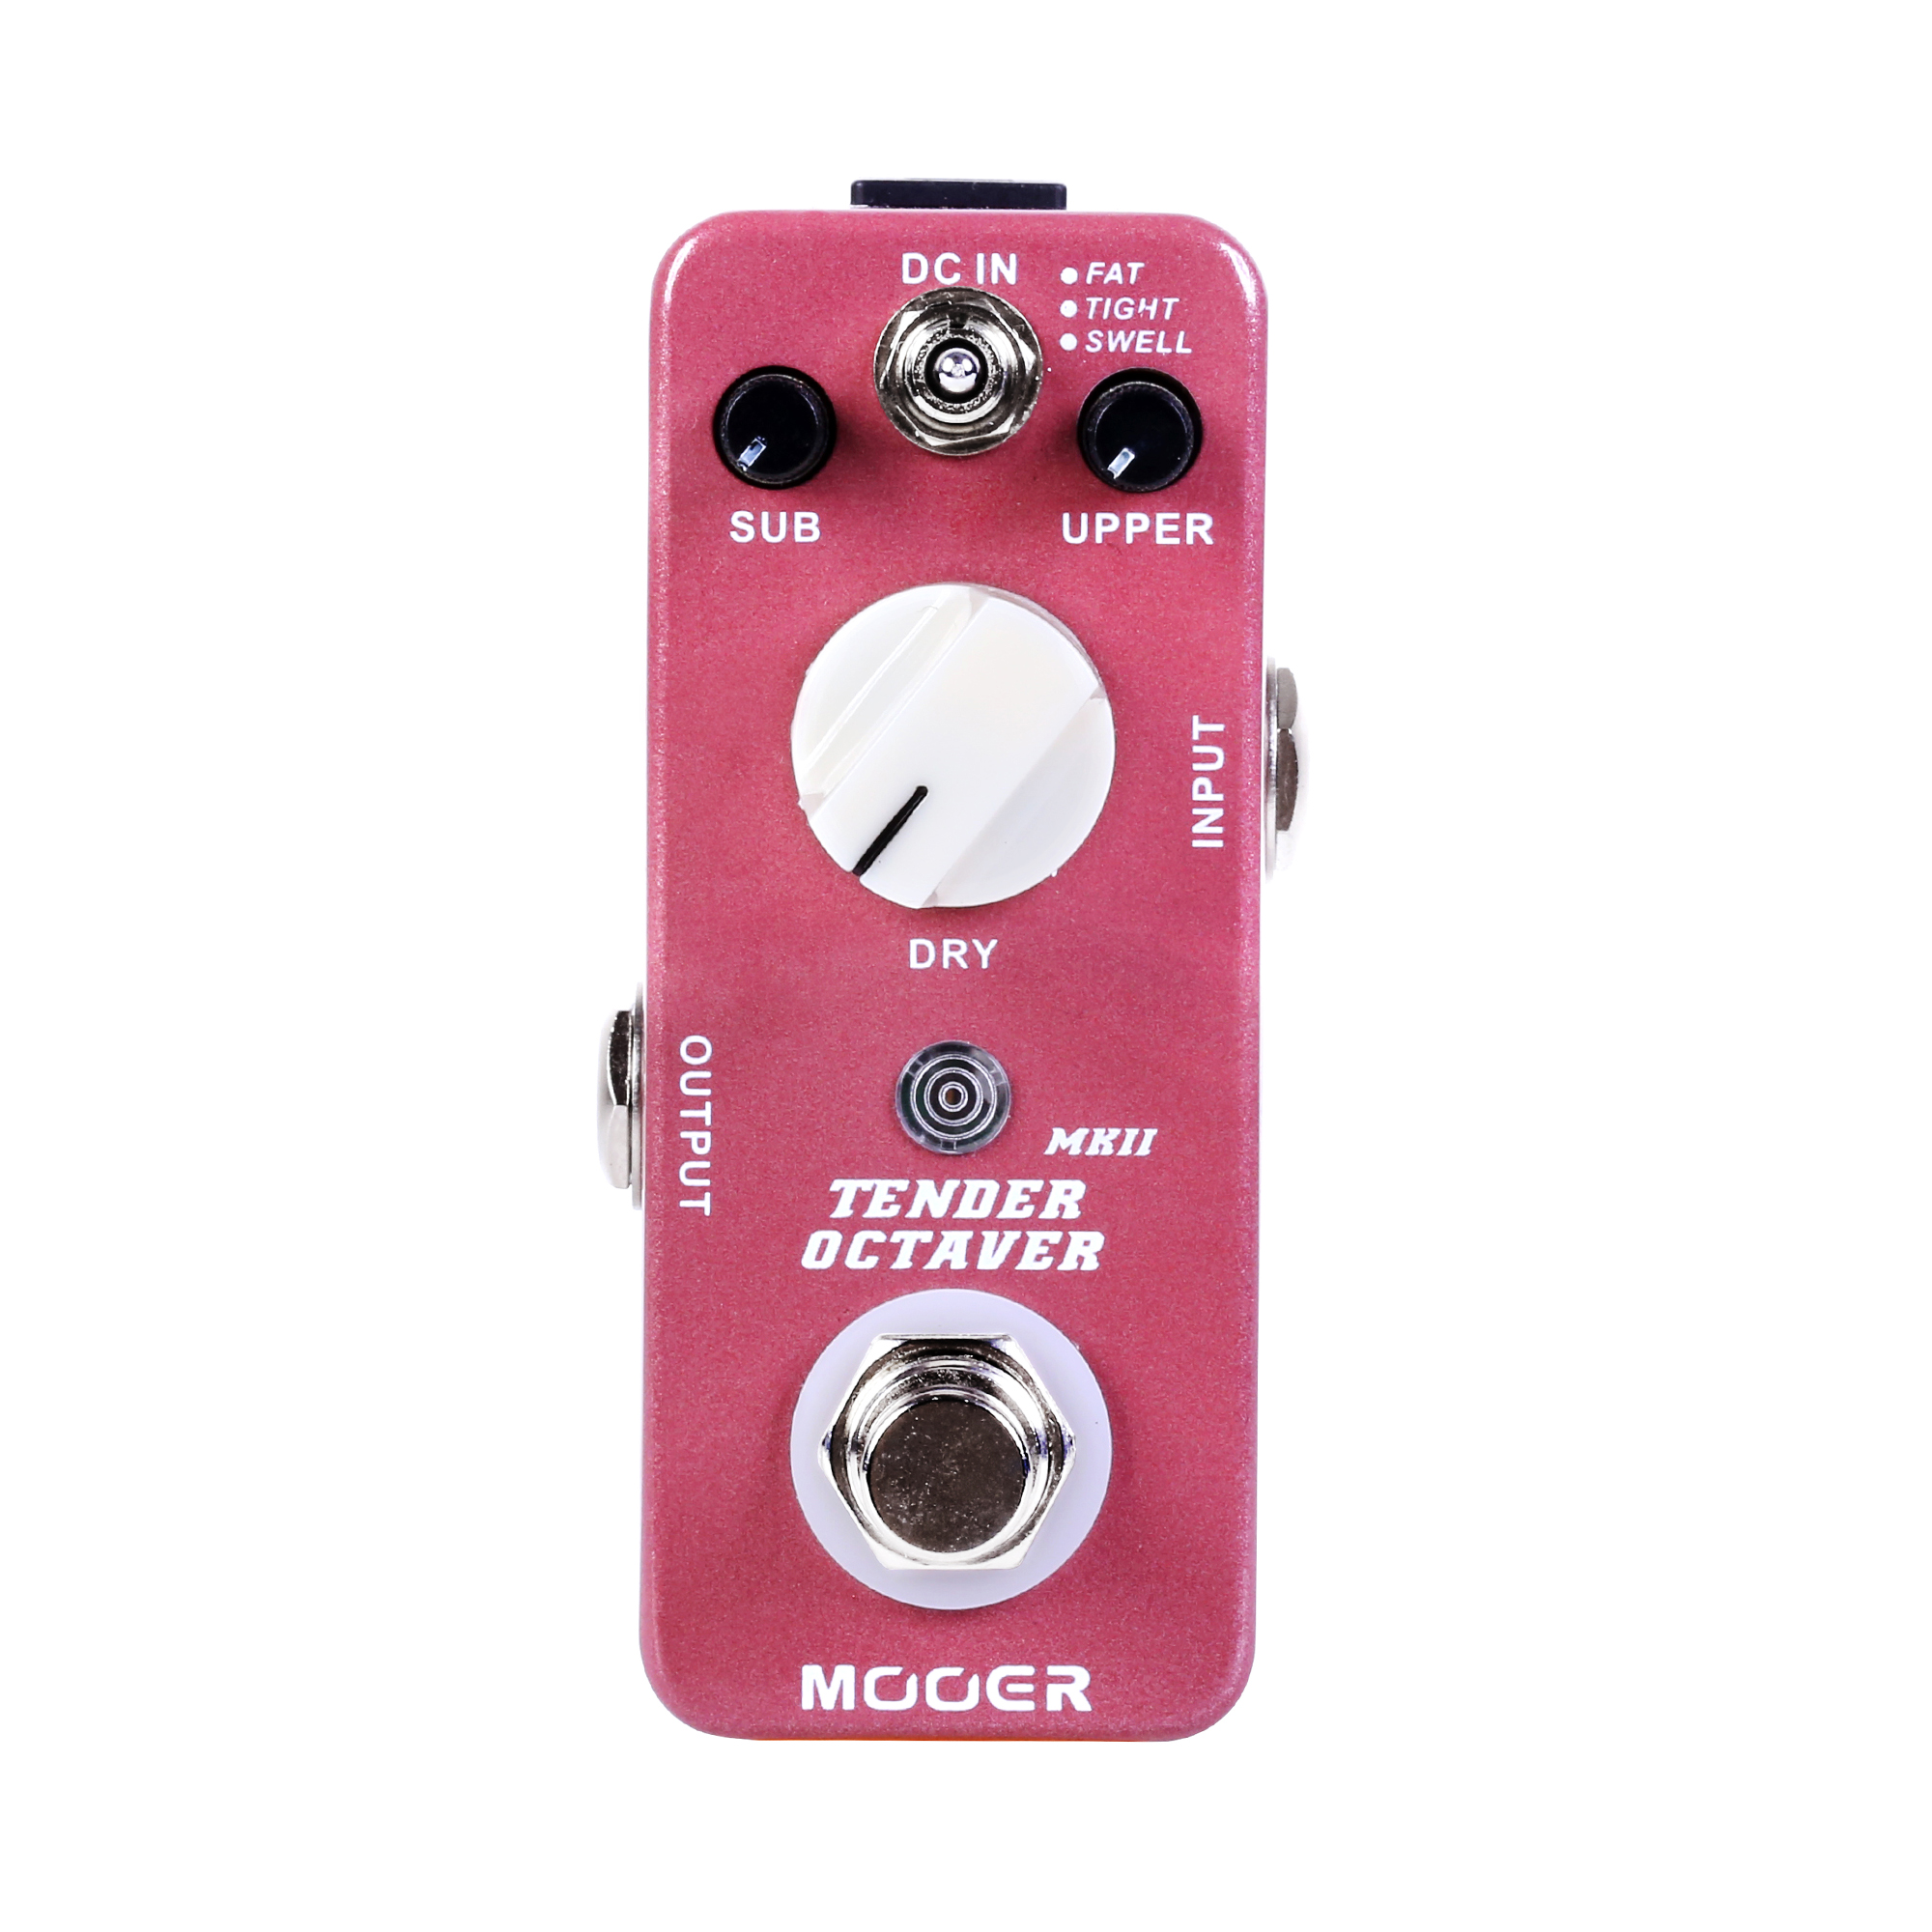 Mooer Tender Octaver MKII Precise Octave Guitar Effect Pedal SUB UPPER DRY Controls True Bypass 3 Tones Switch aroma adr 3 dumbler amp simulator guitar effect pedal mini single pedals with true bypass aluminium alloy guitar accessories